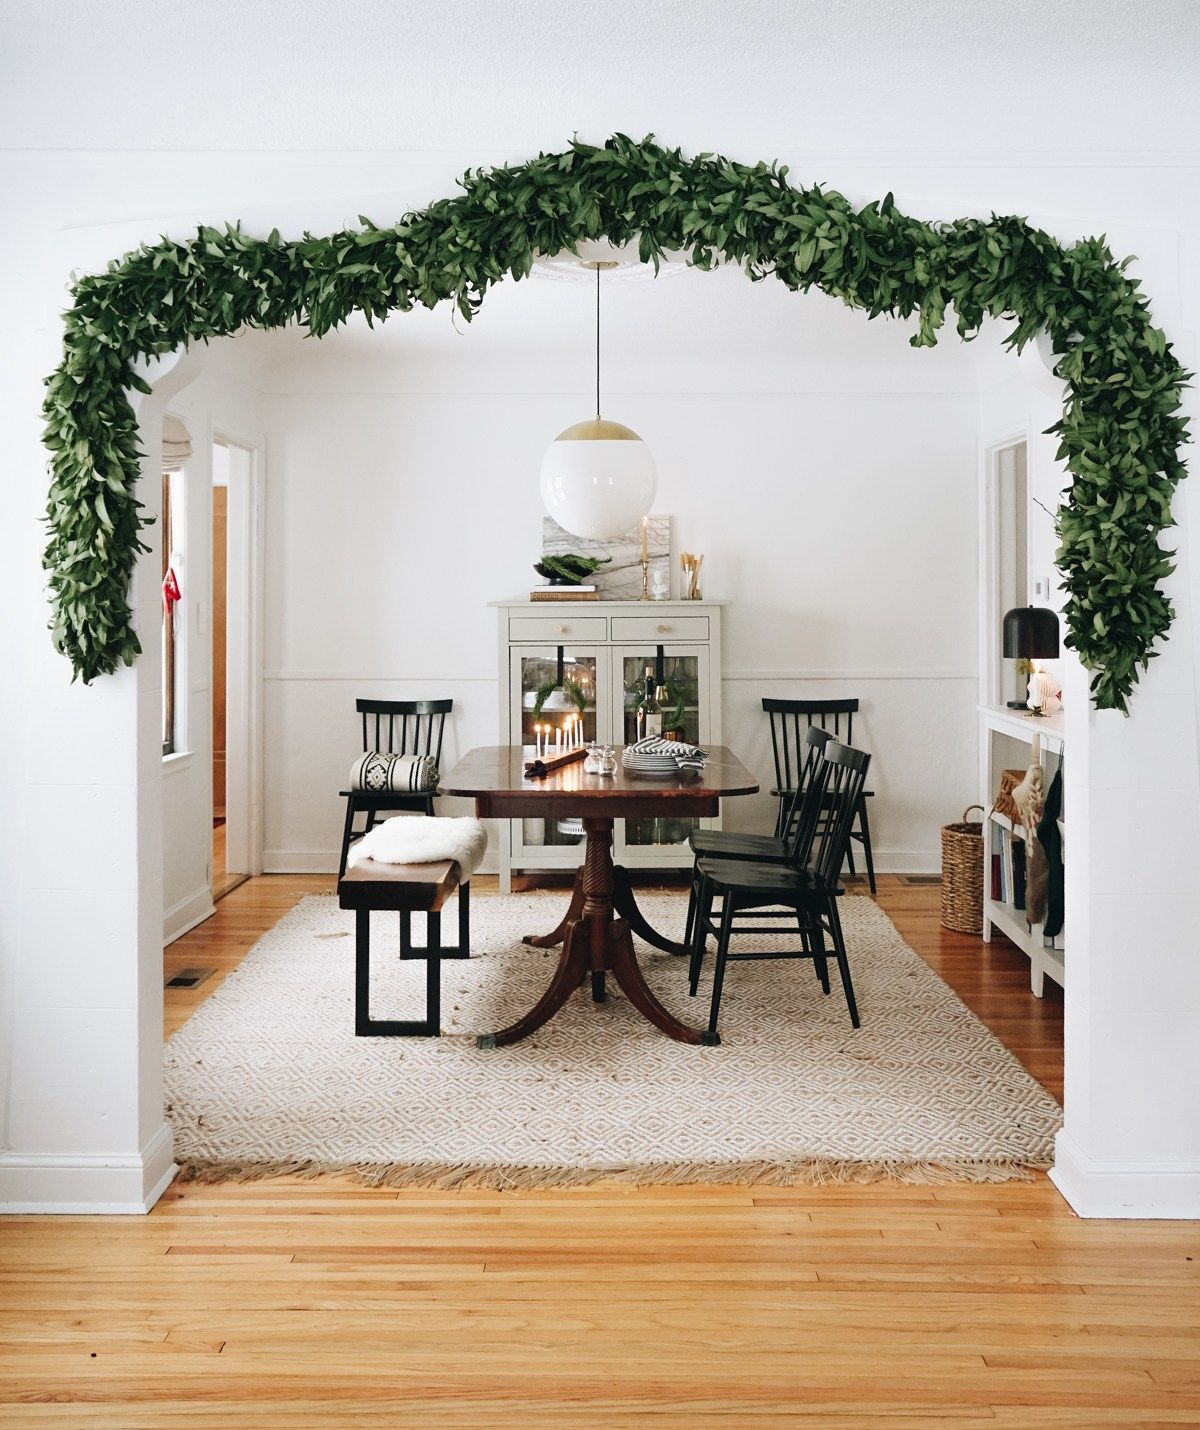 Nordic Christmas Home 2018 With Images Home Decor Winter Home Decor White Home Decor